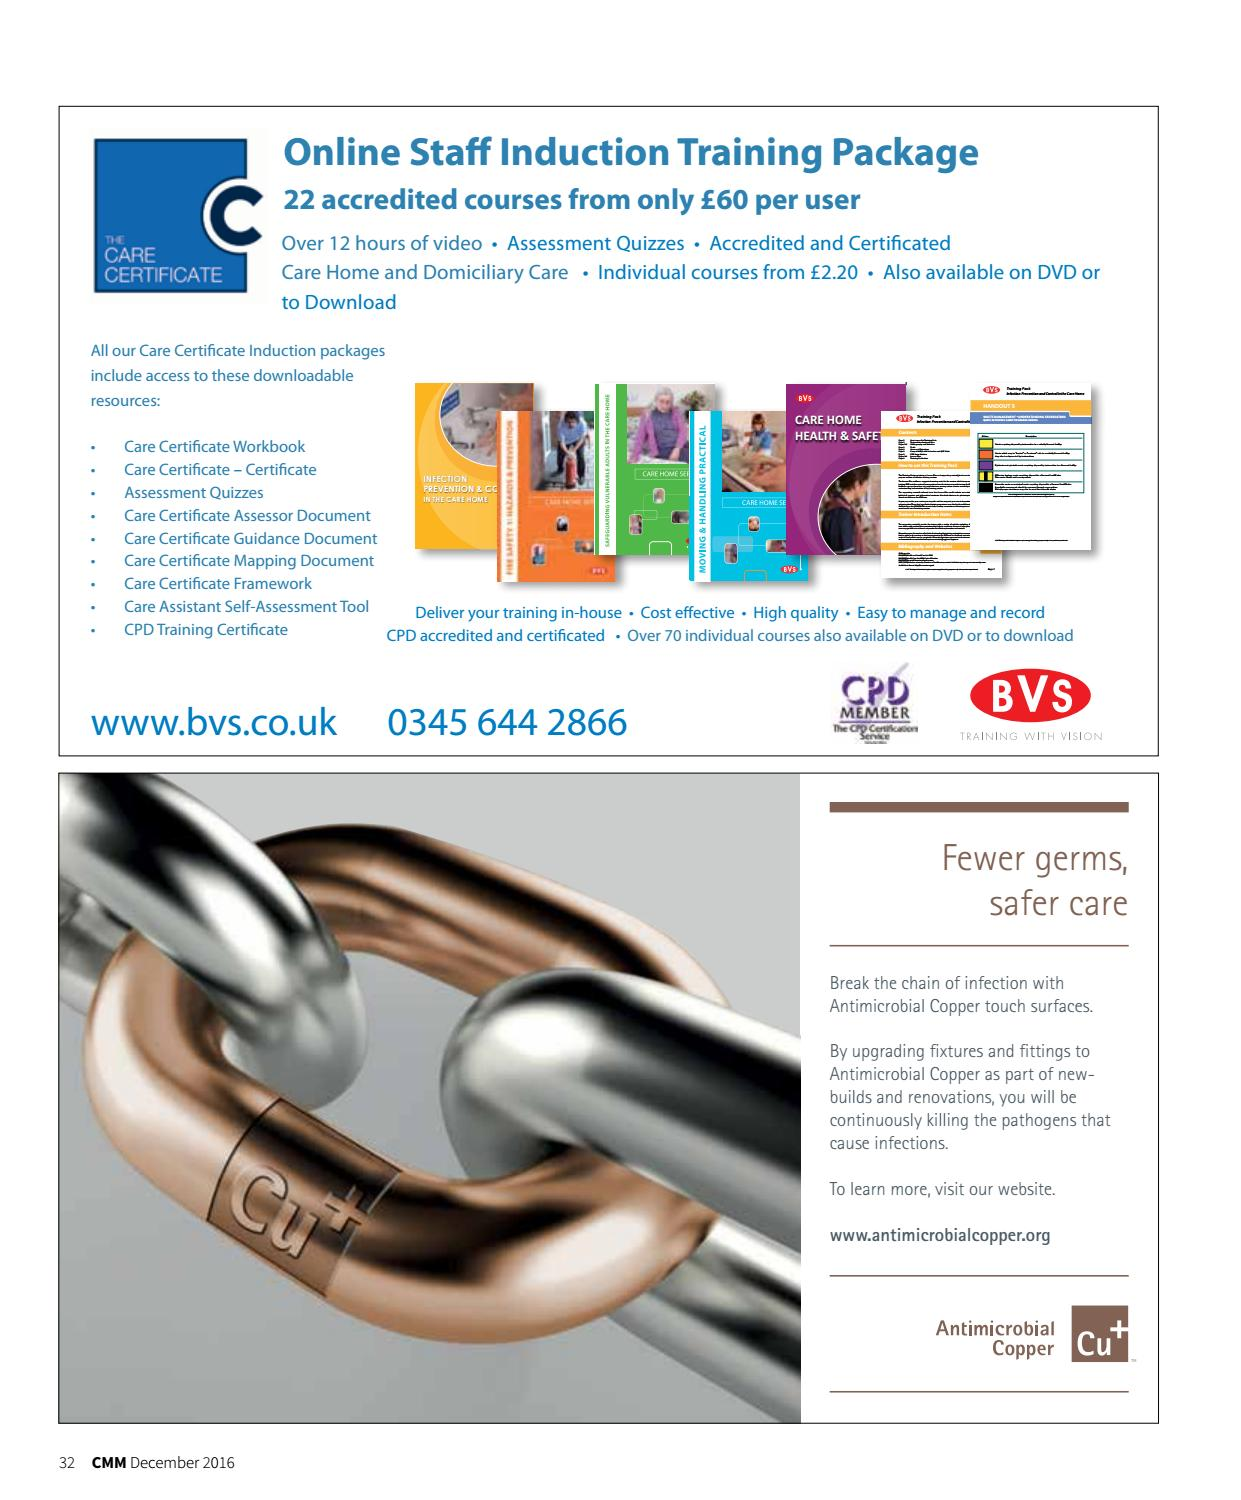 Care Management Matters December 2016 By Care Choices Ltd Issuu